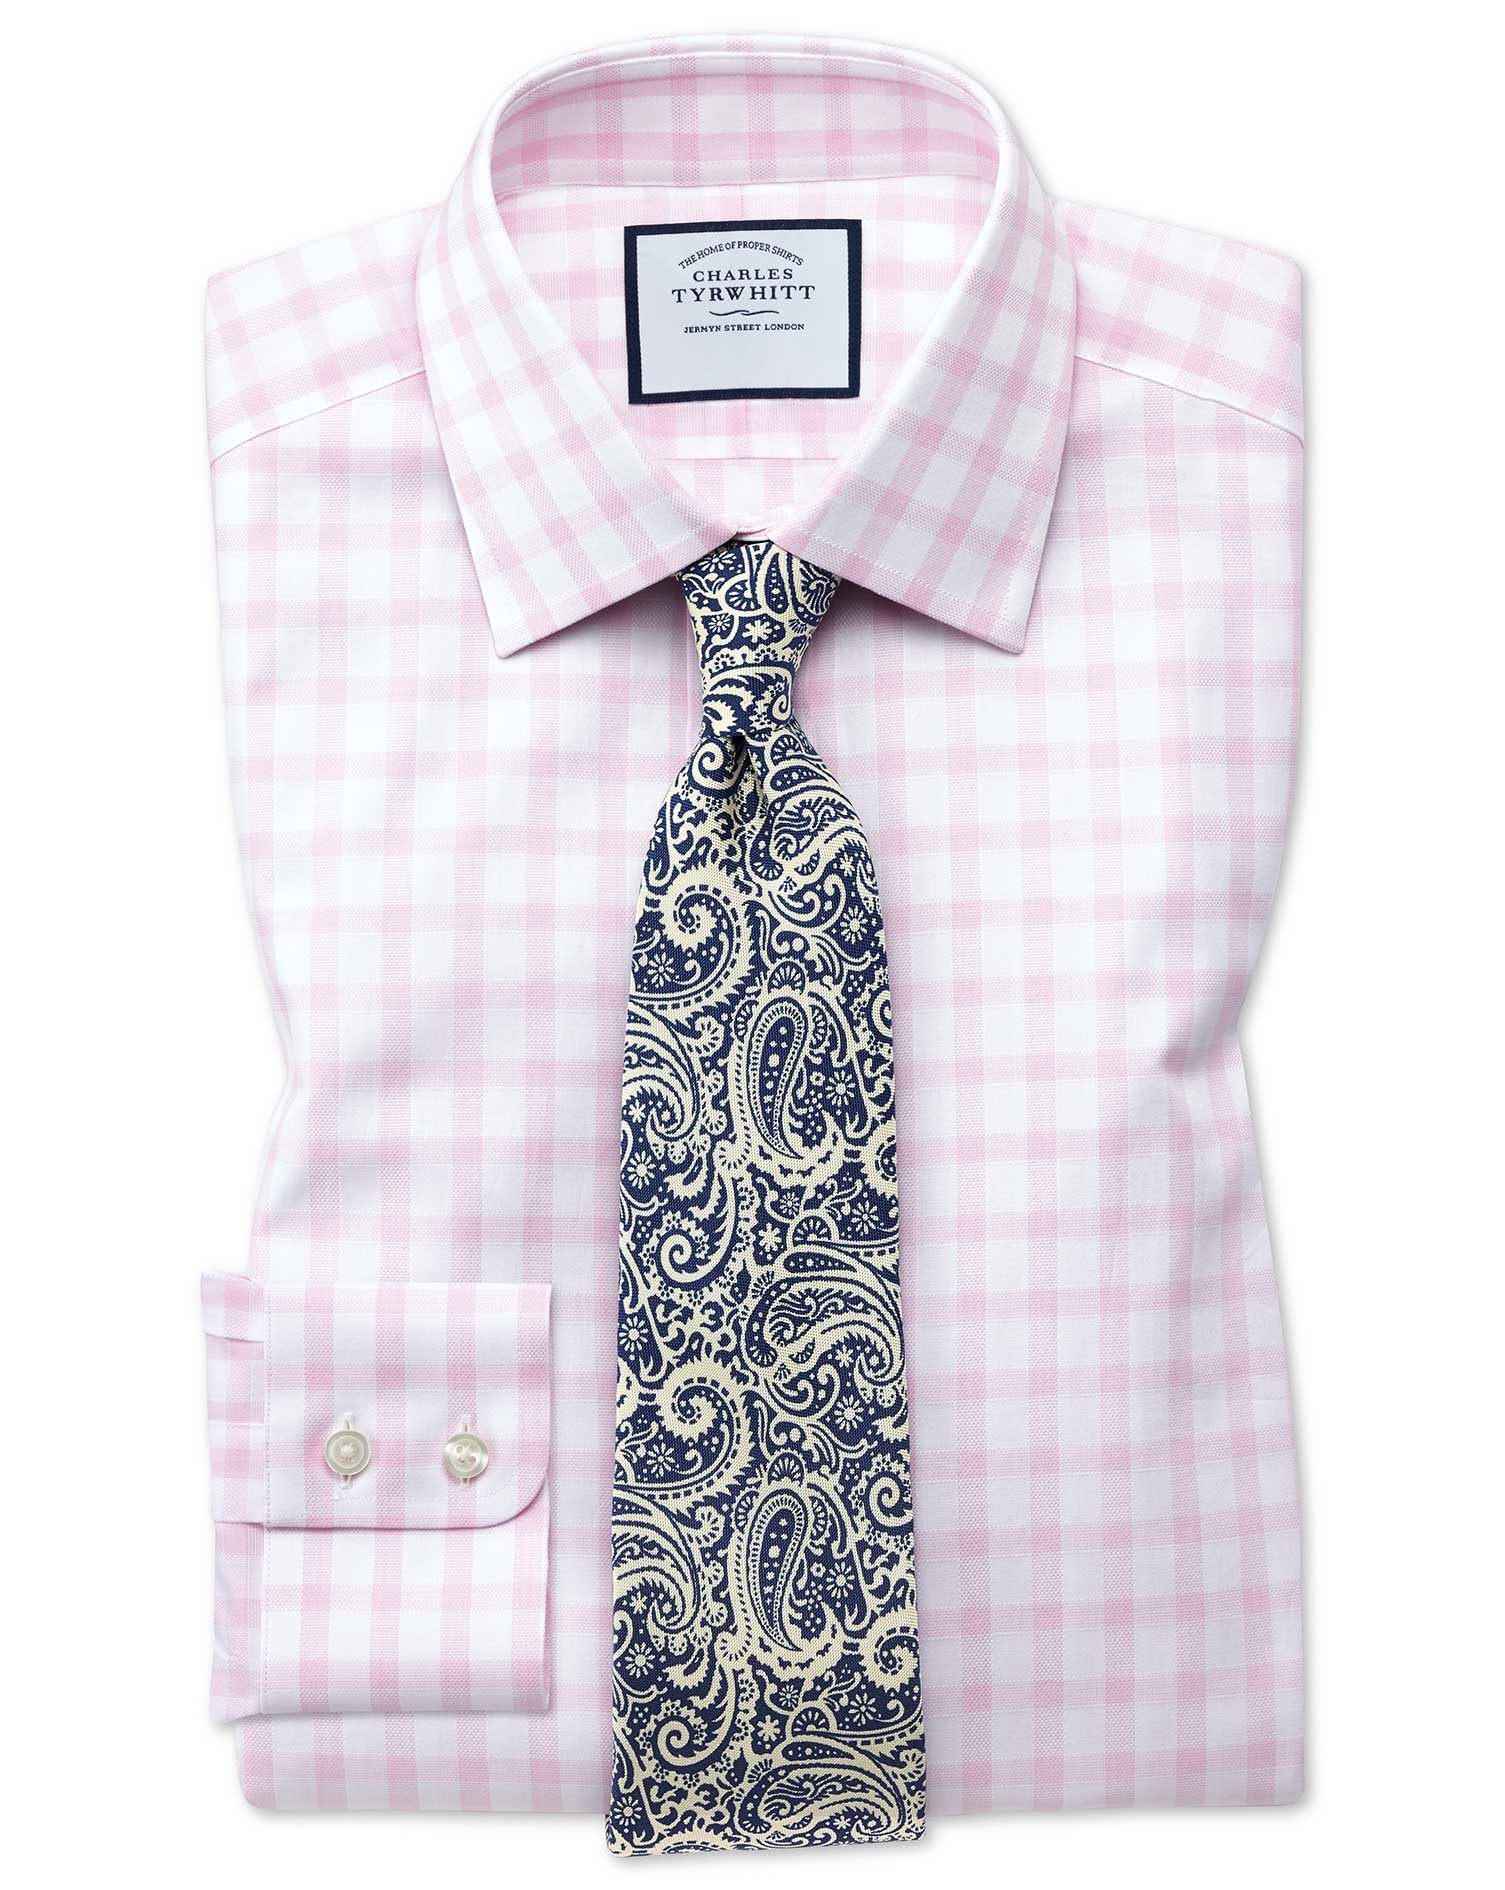 Extra Slim Fit Windowpane Check Pink Cotton Formal Shirt Single Cuff Size 15/35 by Charles Tyrwhitt